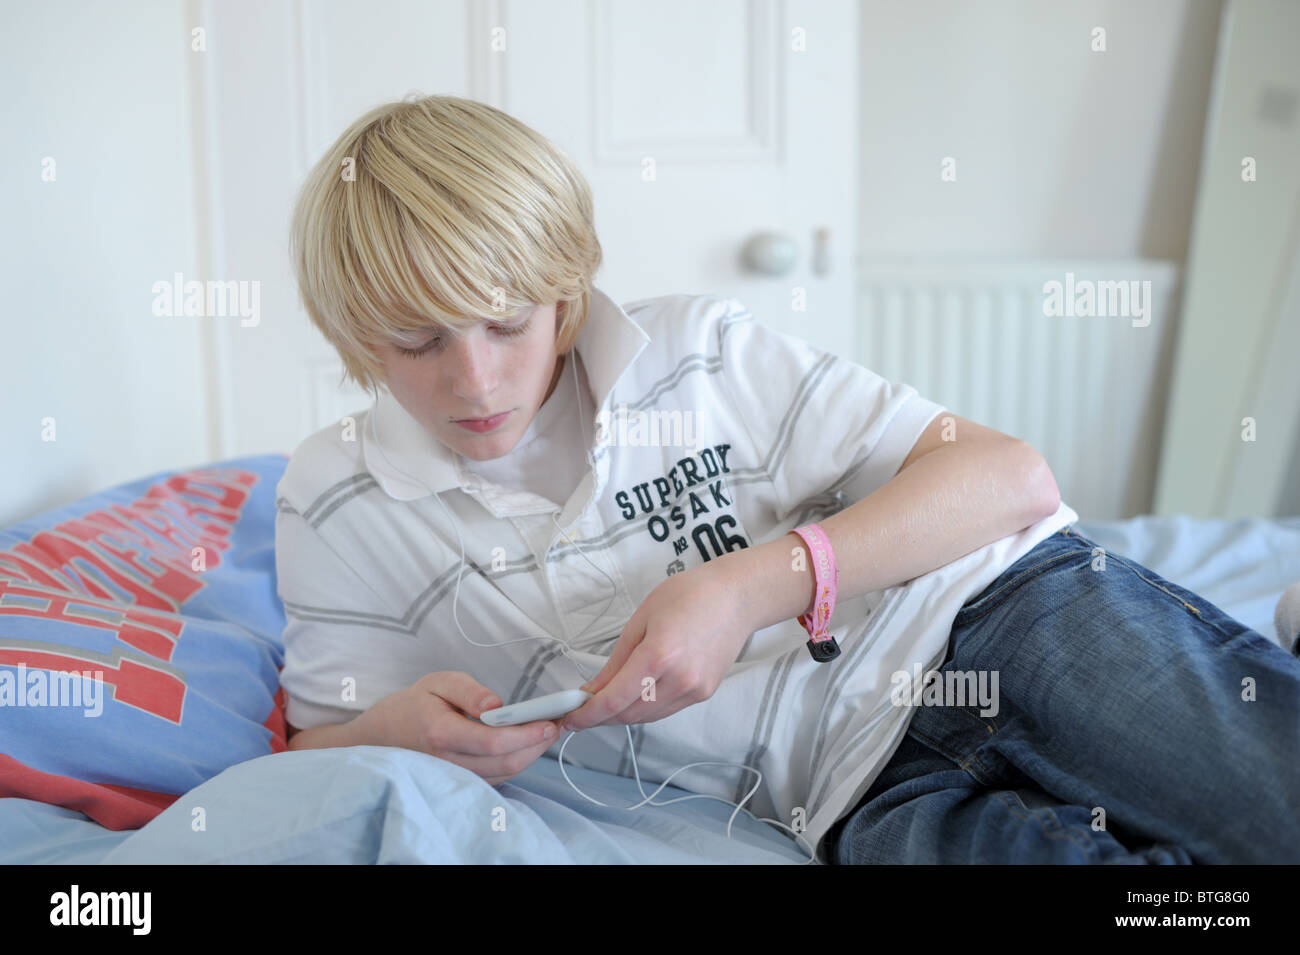 Teenage Boy Alone In His Bedroom Lying On The Bed Concentrating On